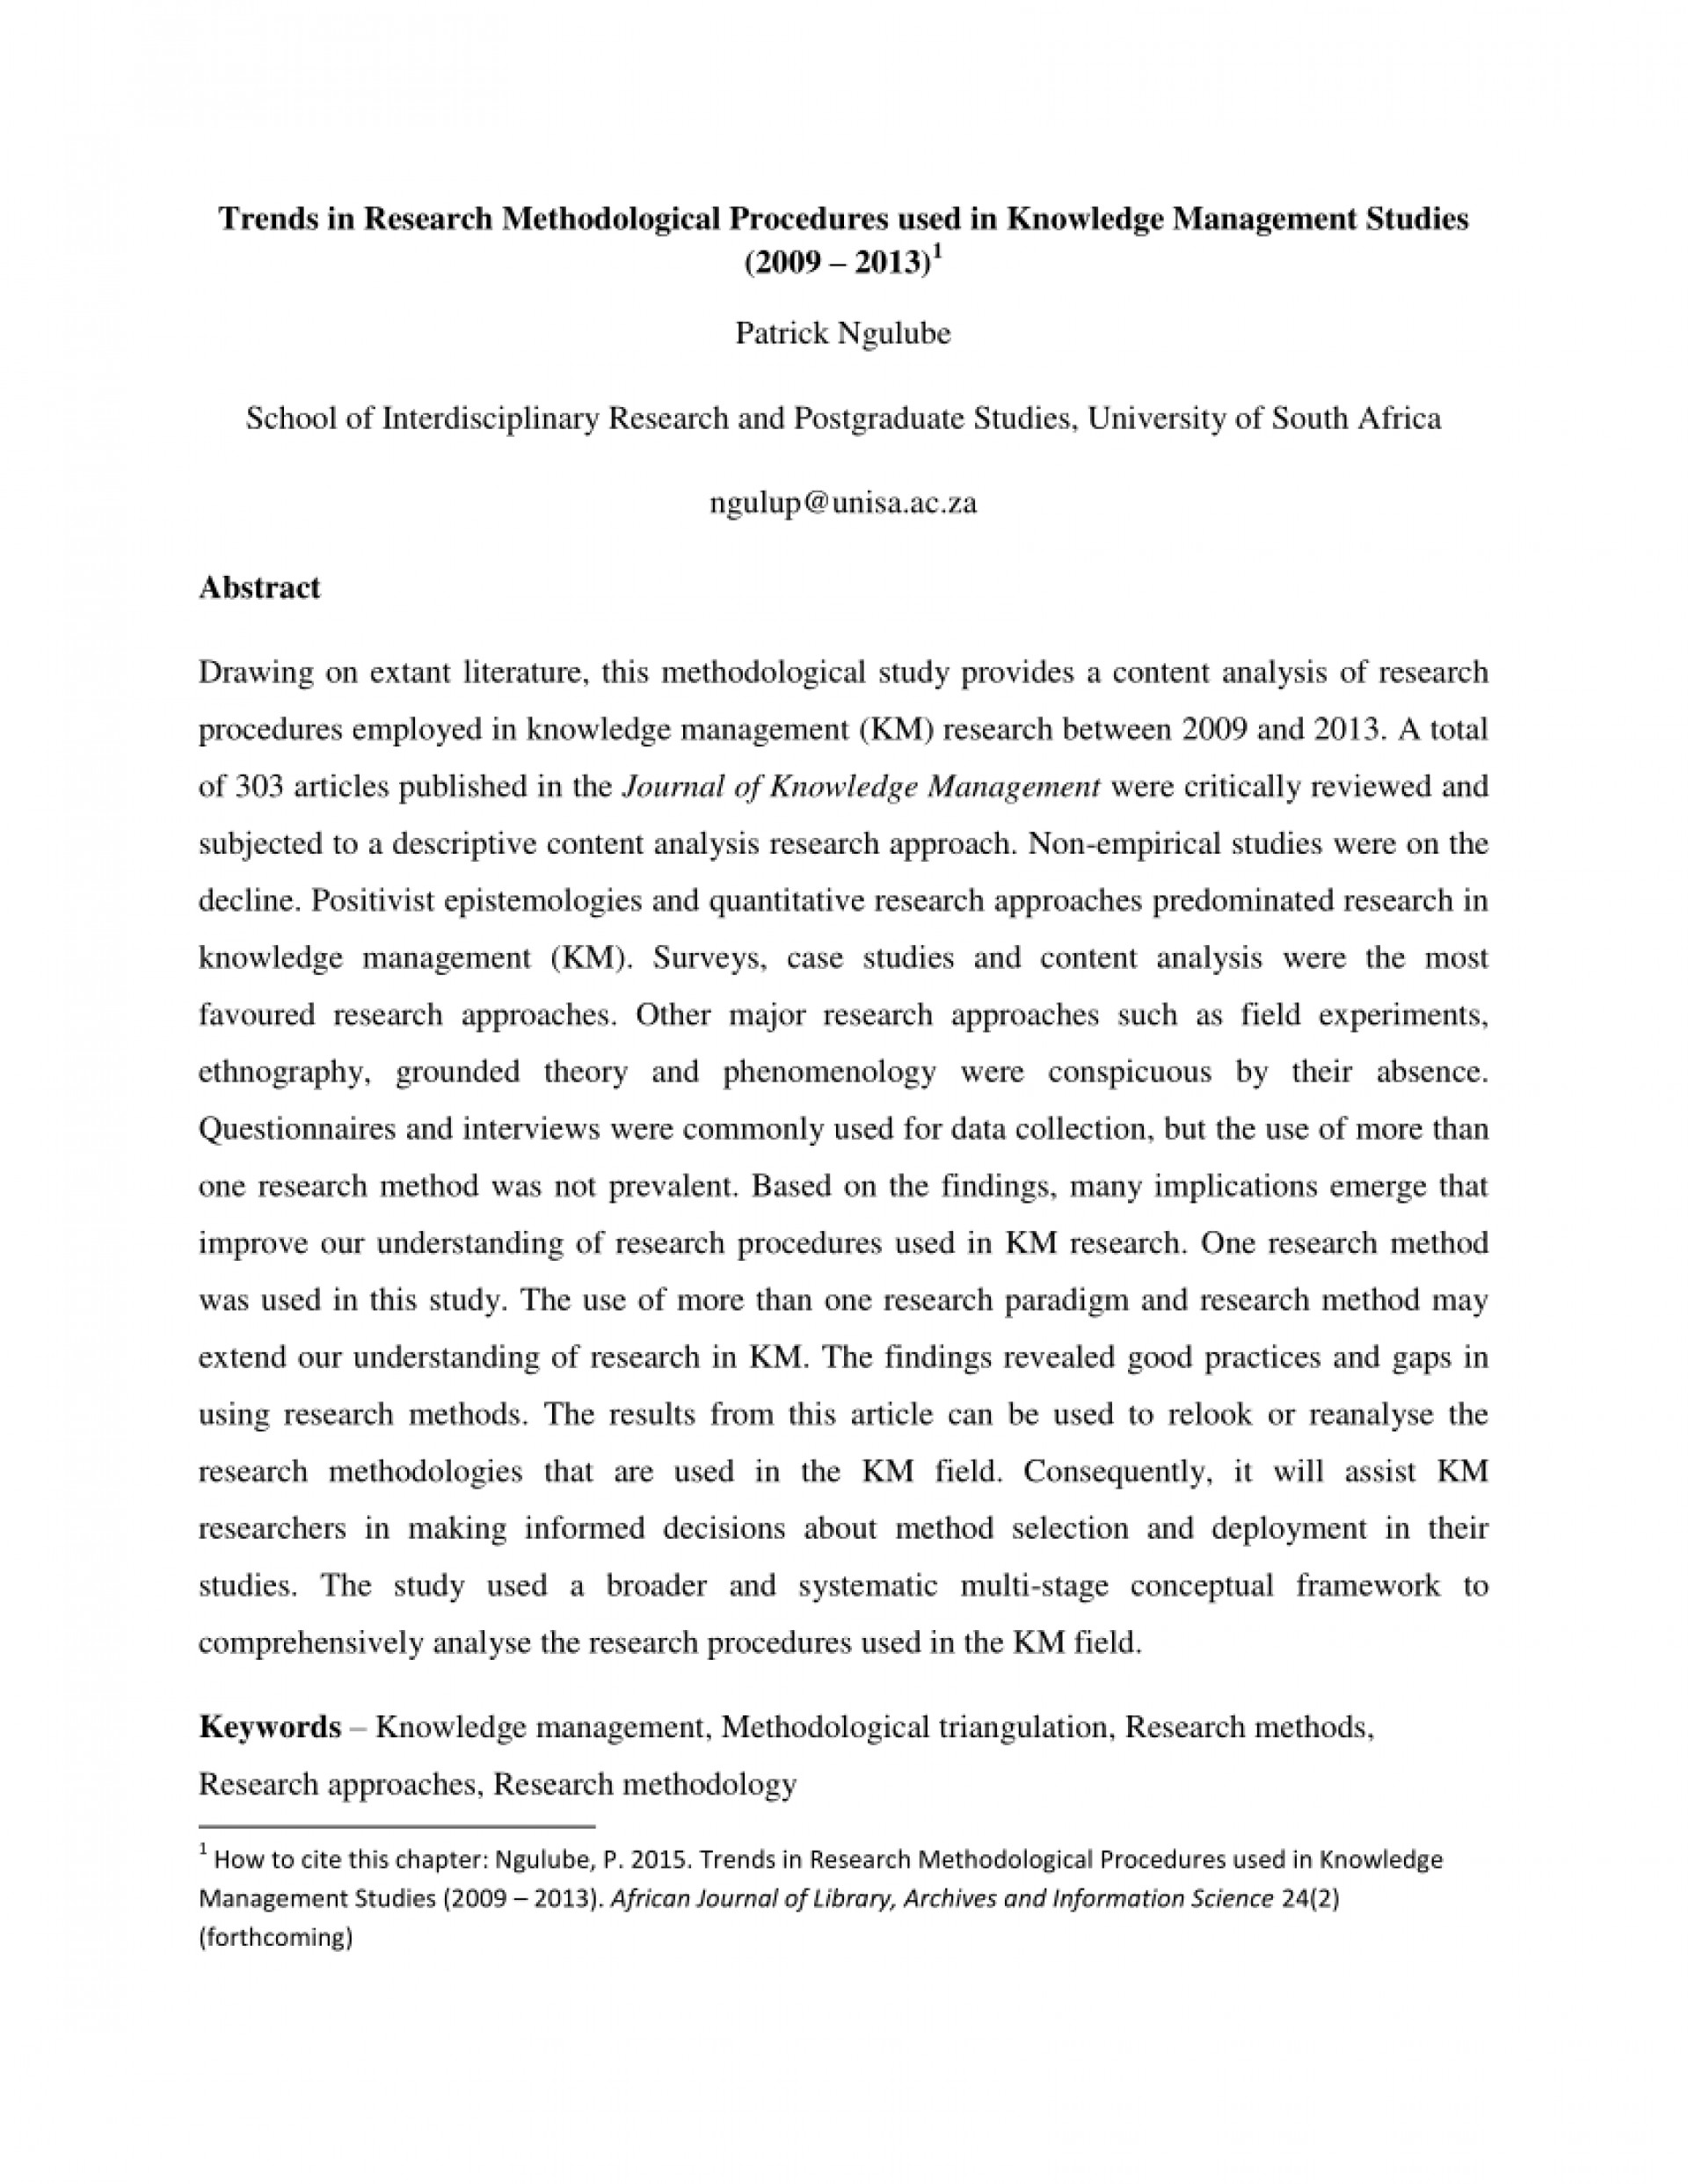 003 Largepreview Research Paper Methods Used Singular In Different Examples Of Materials And 1920